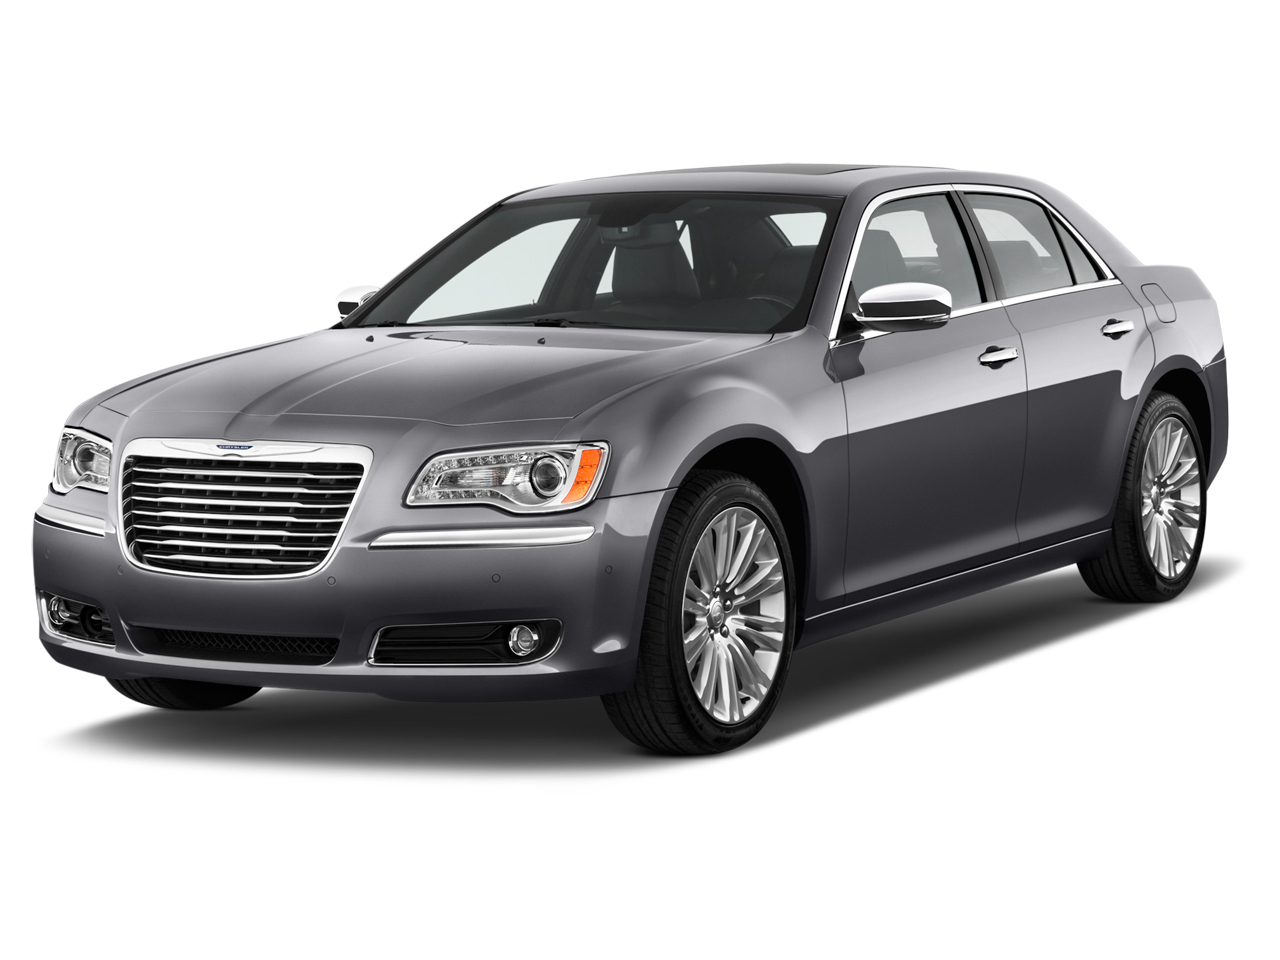 2019 Chrysler 300 Luxury Series photo - 5